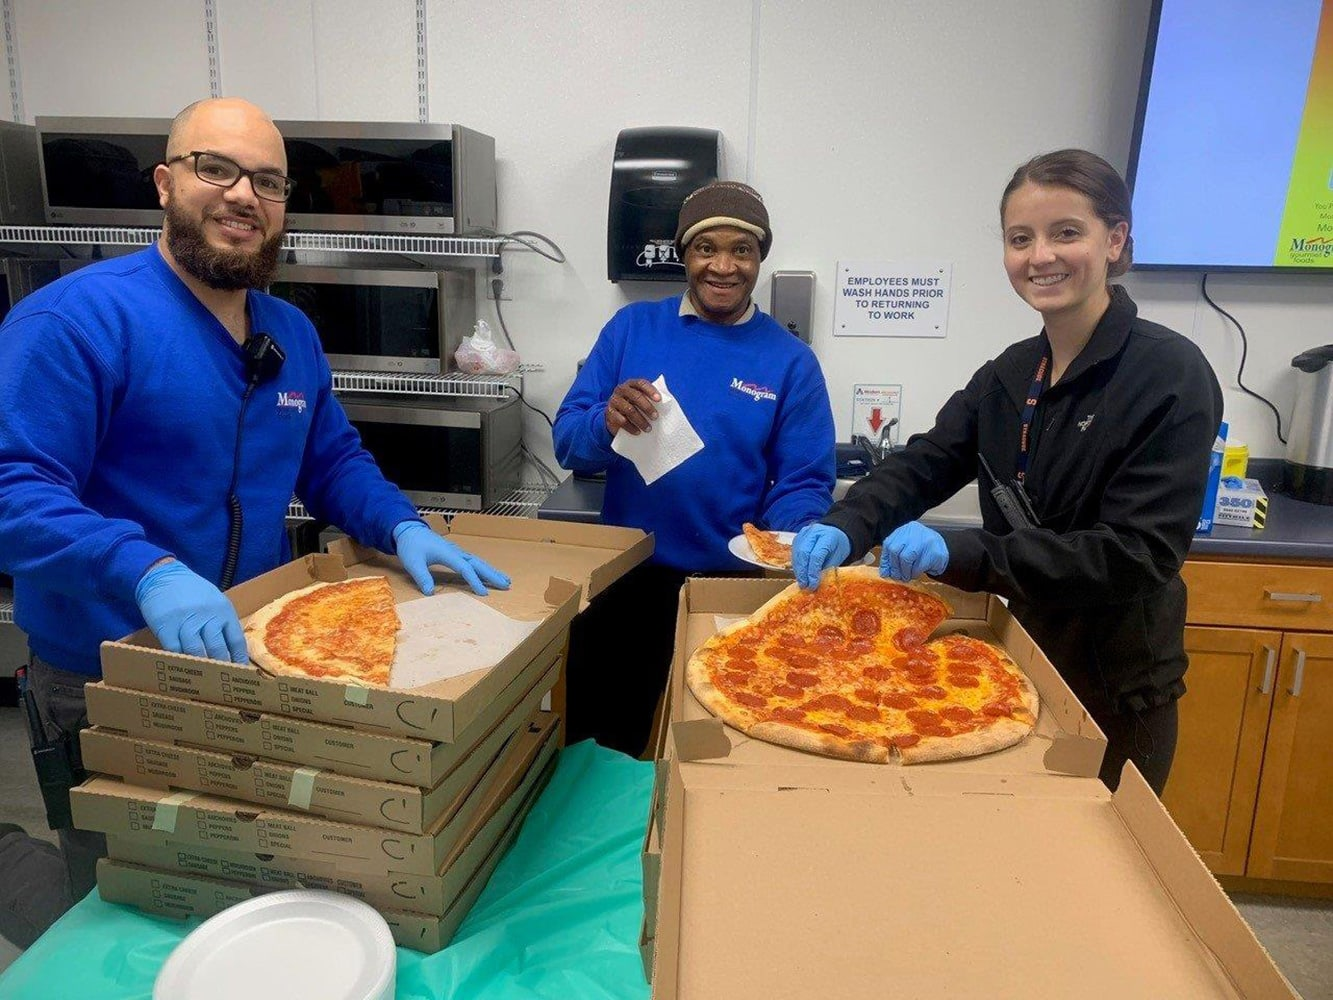 employees server pizza to staff